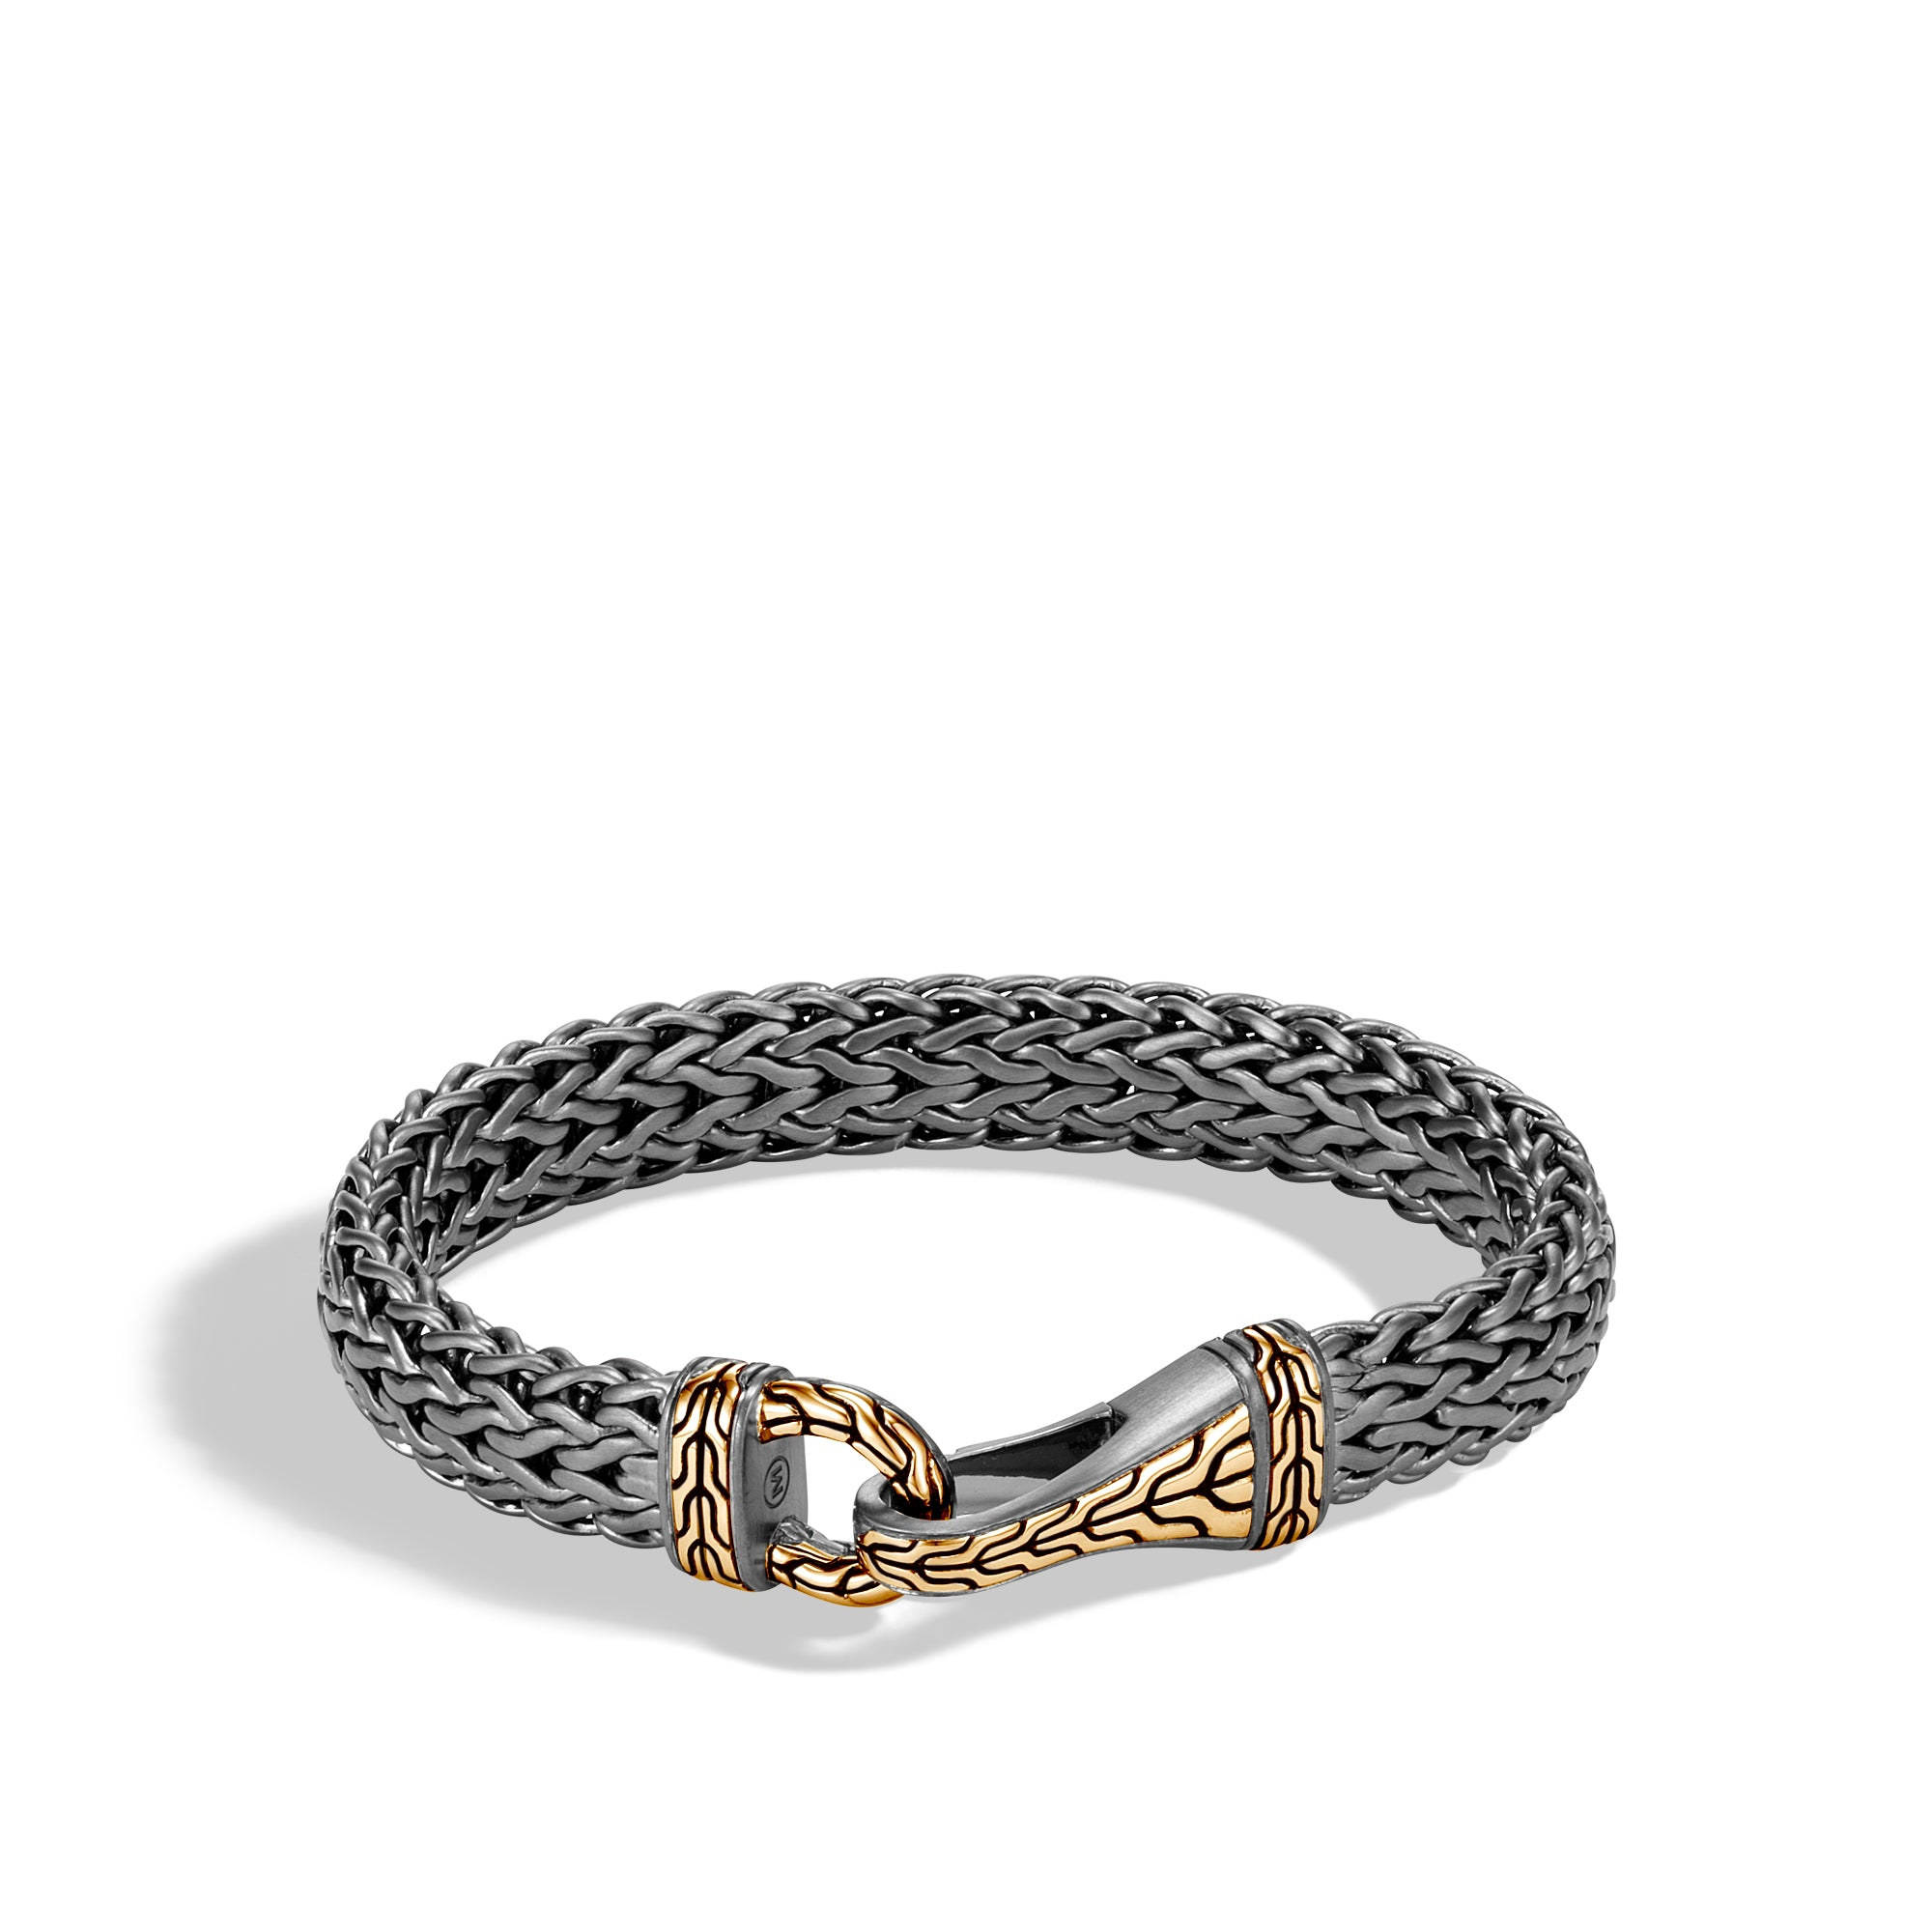 Classic Chain 18K Yellow Gold & Silver Matte Black Rhodium Flat Chain Bracelet with Hook Clasp